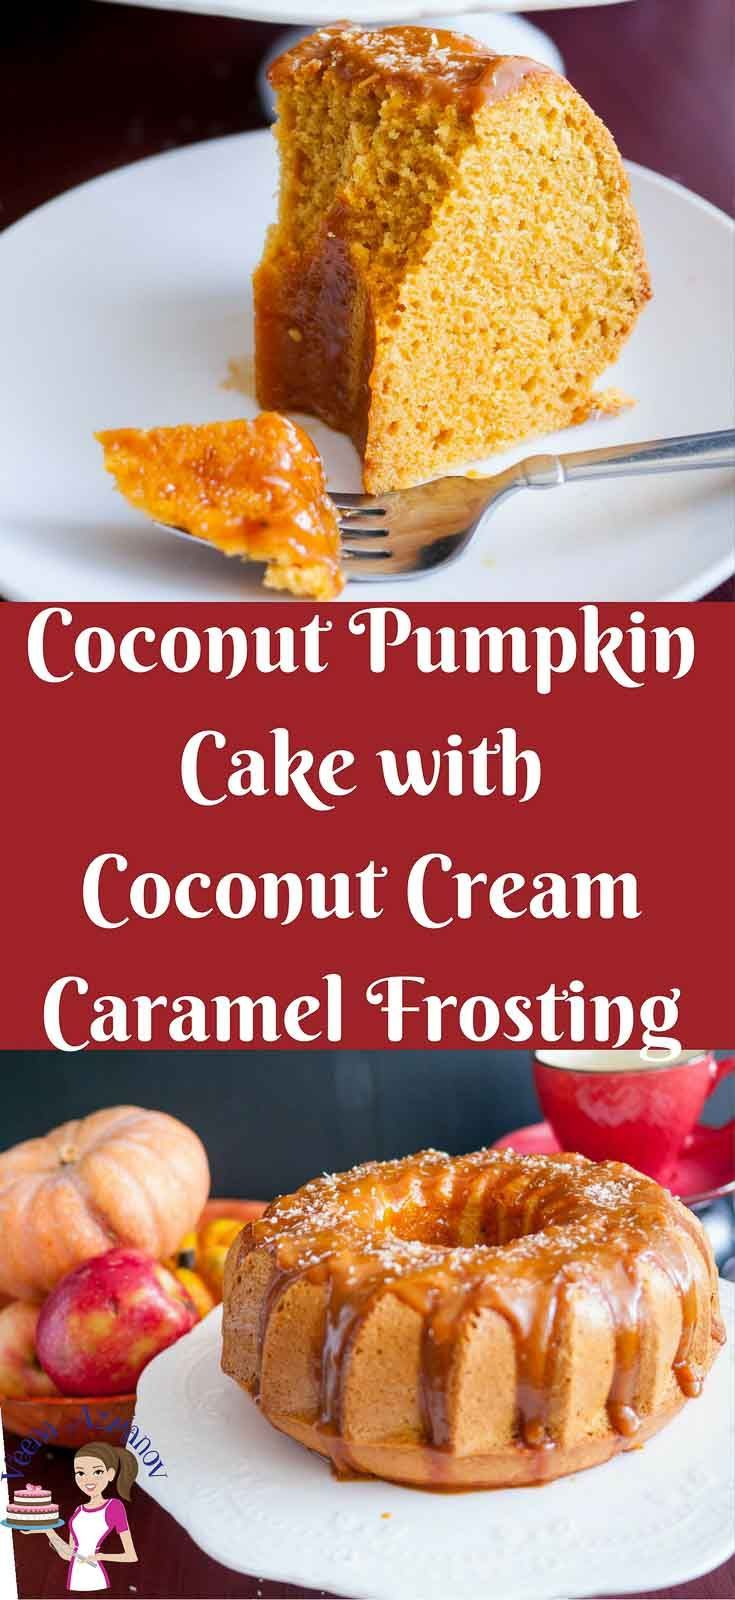 Pinterest image for coconut pumpkin cake with coconut cream caramel pinterest image for coconut pumpkin cake with coconut cream caramel frosting food bloggers best recipes pinterest pinterest images forumfinder Image collections